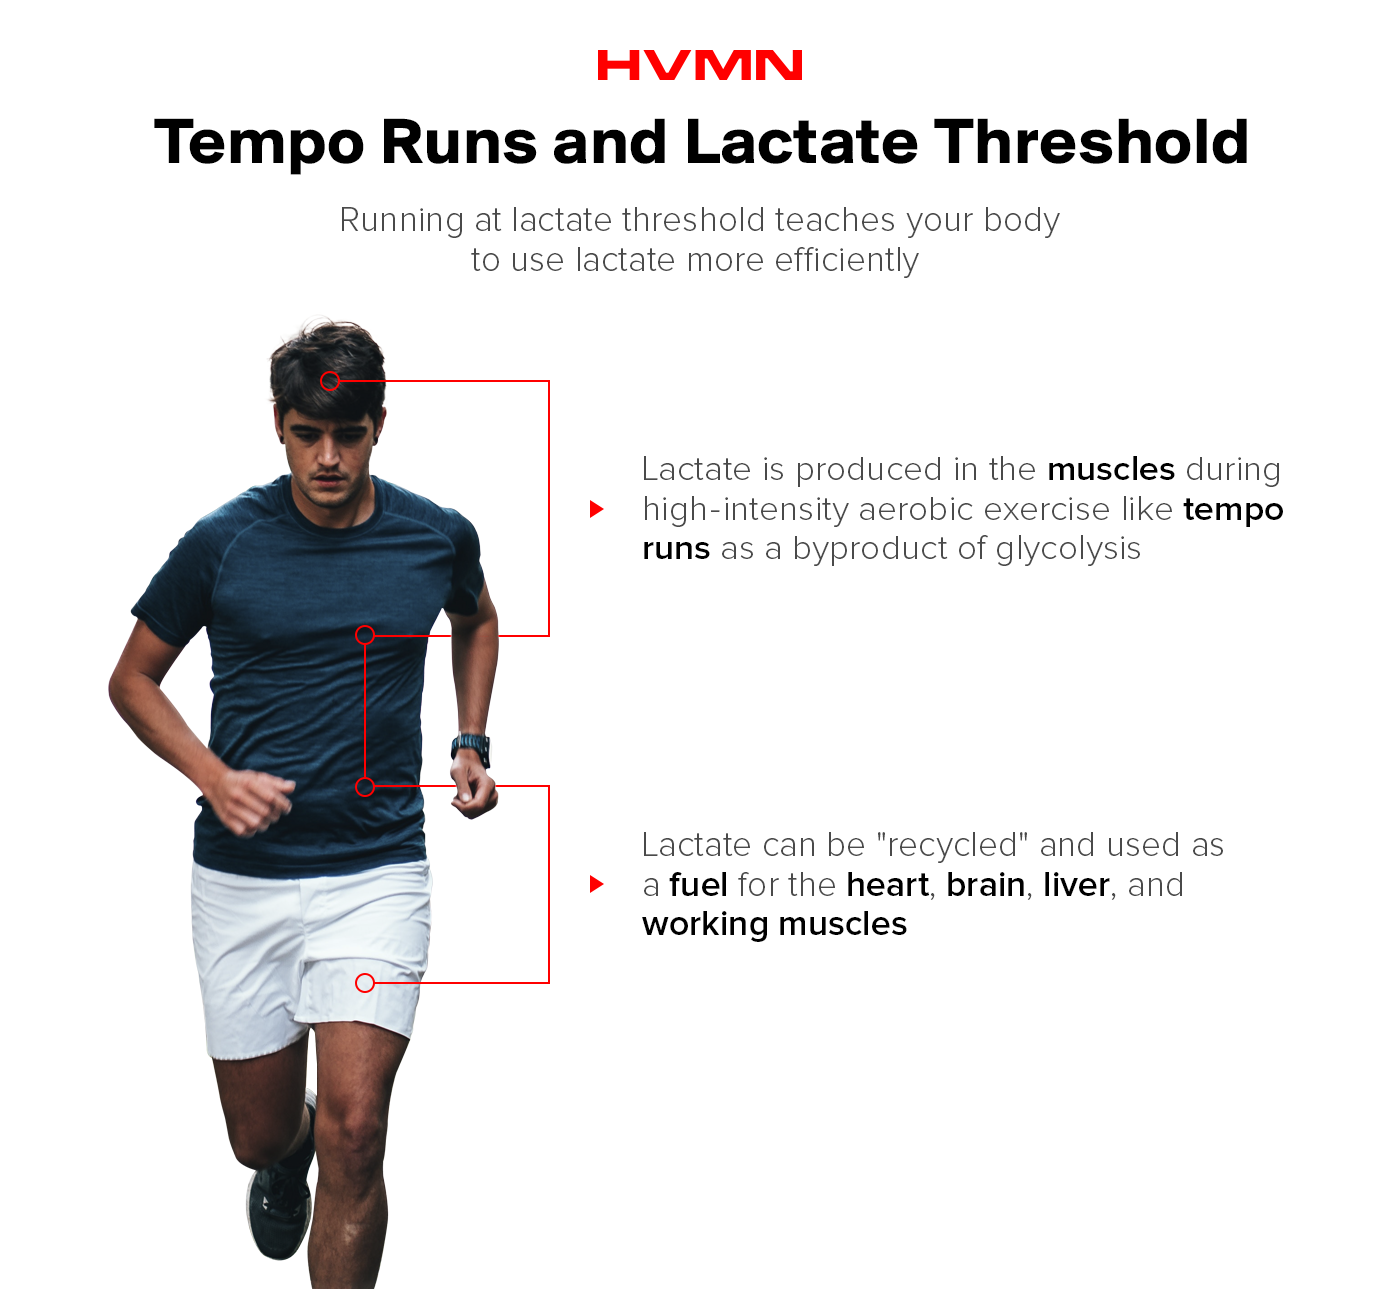 This image is showing how tempo runs teach the body to use lactate. By running at lactate threshold, the body becomes efficient at using lactate. This image shows a man running, with two arrows coming from his body. The first says that lactate is produced in the muscles during tempo runs, and is a byproduct of glycolysis. Another arrow pointing to the leg describes how lactate can be recycled and used as a fuel by the heart, brain, liver, and muscles.